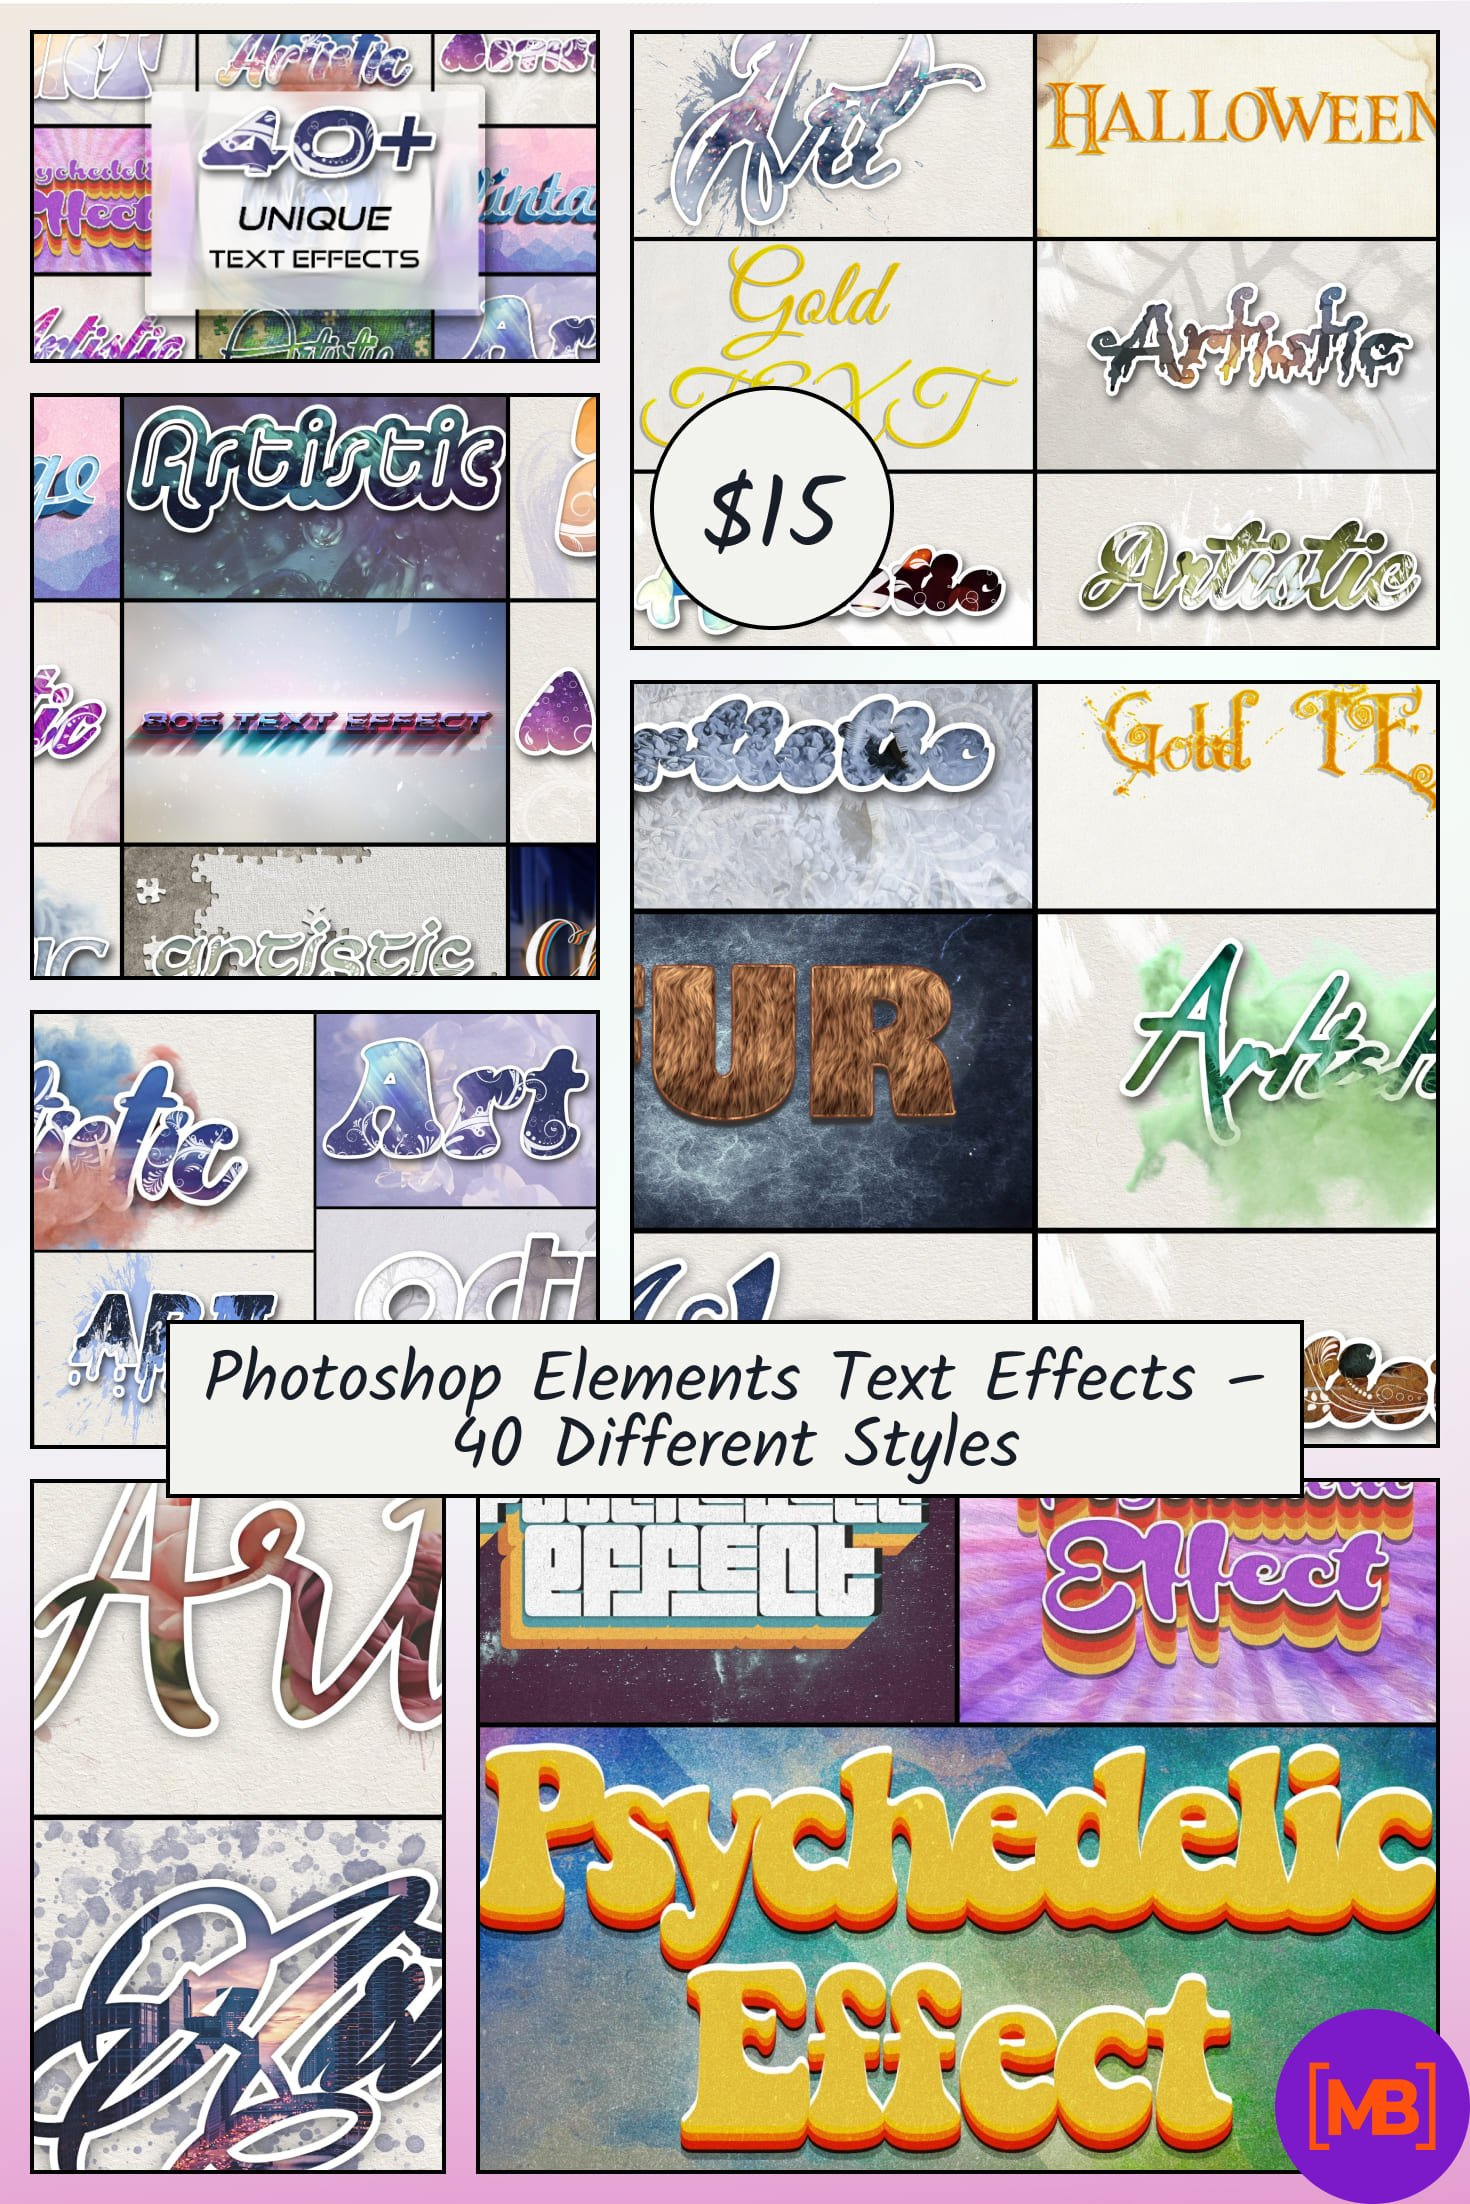 Photoshop Elements Text Effects - 40 Different Styles. Collage Image.